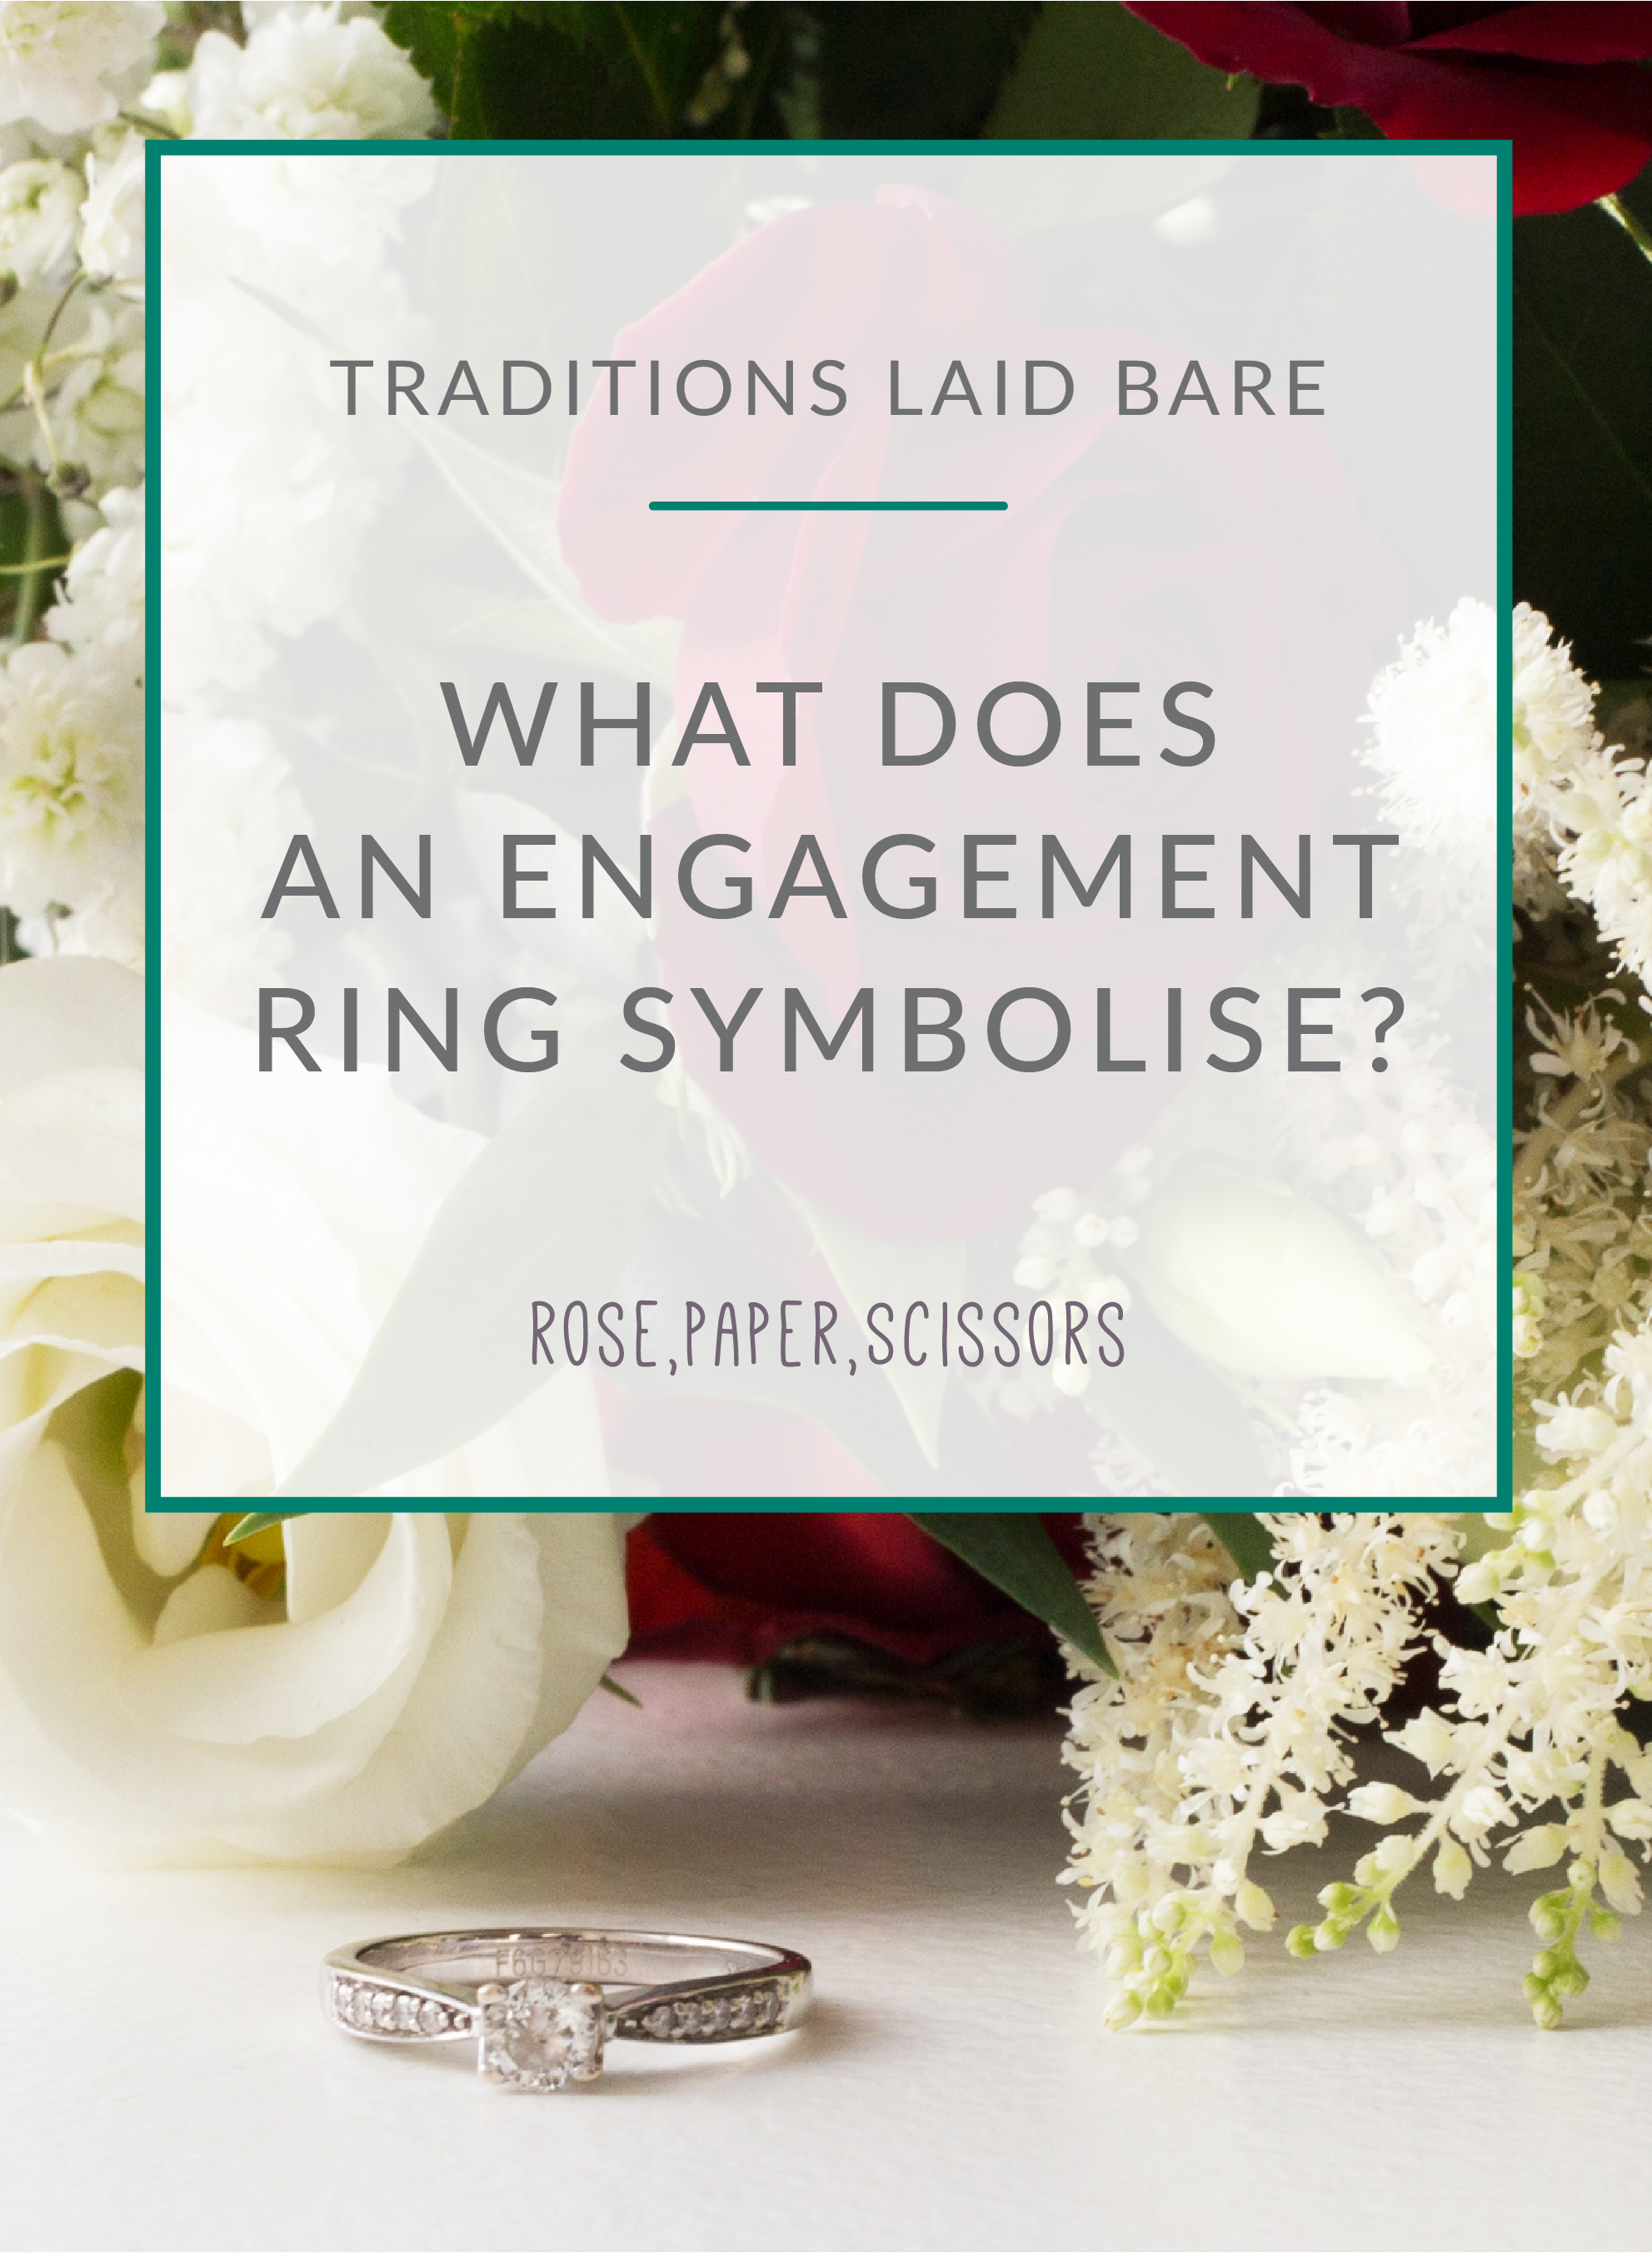 WHAT DO ENGAGEMENT RINGS SYMBOLISE?